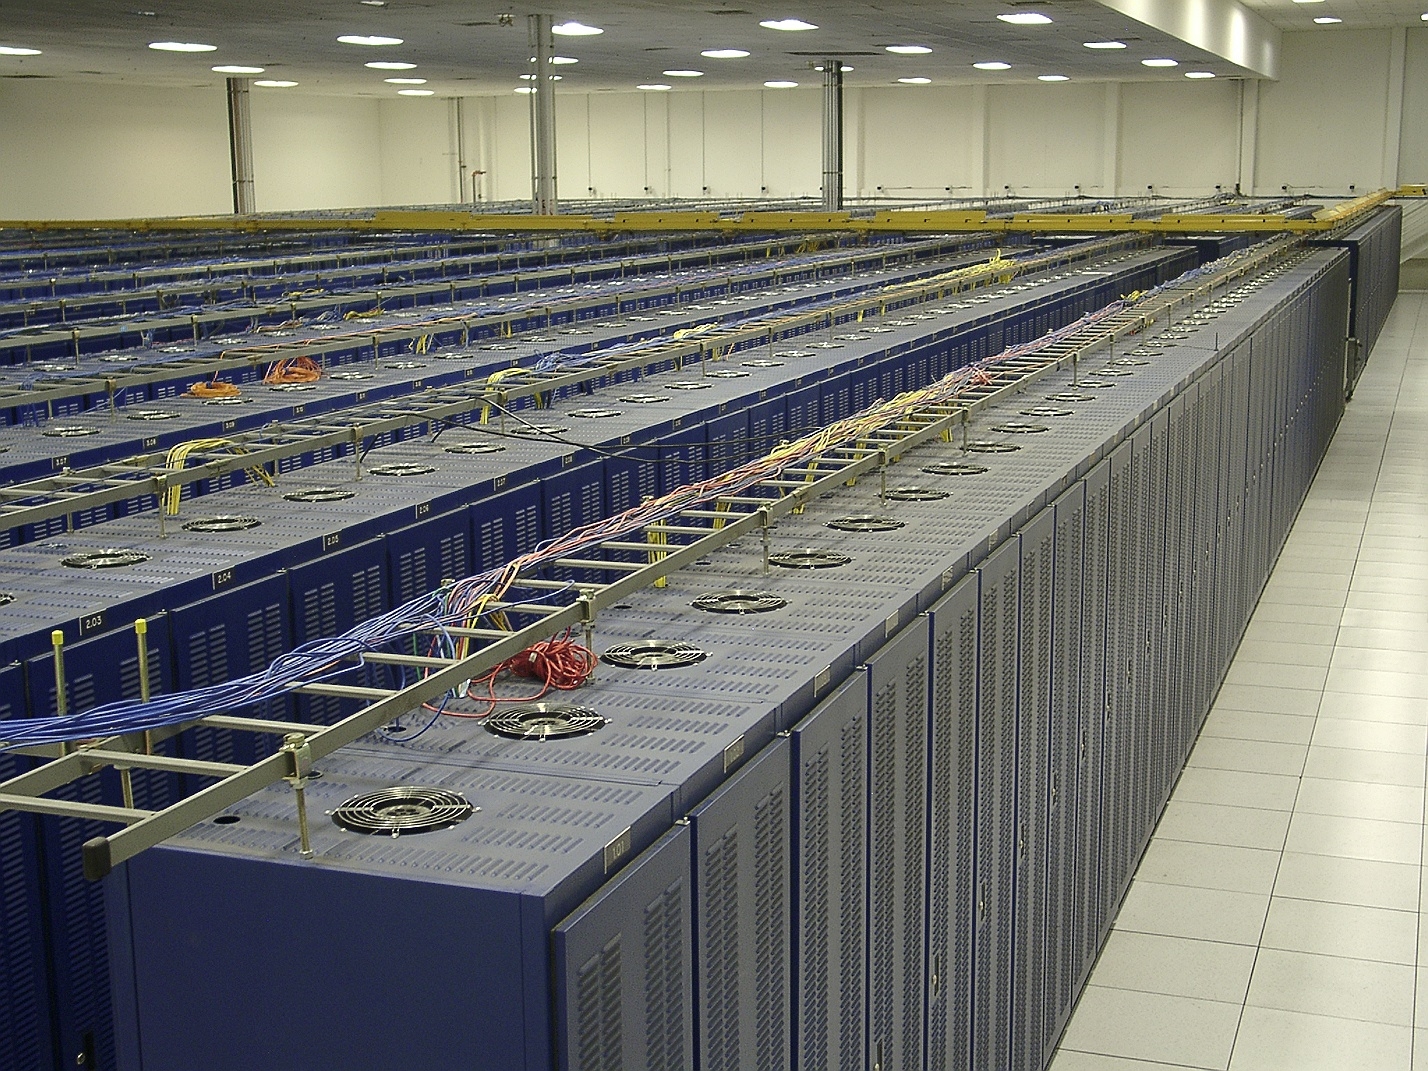 Overhead View (Virtual Tour of Hurricane Electric's Fremont 1 Data Center)